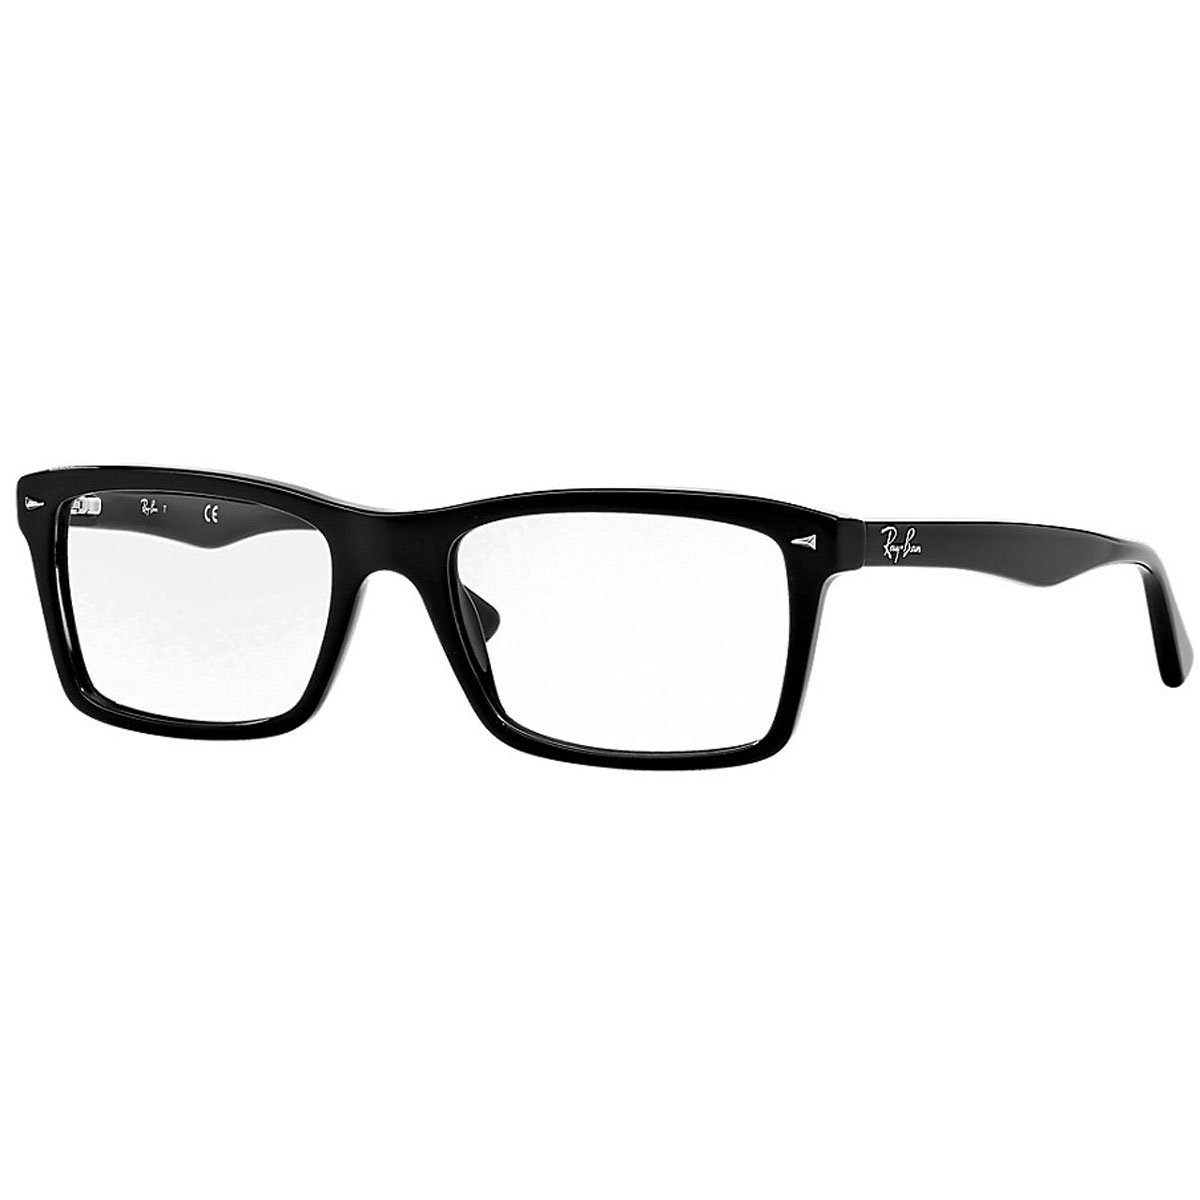 Amazon.com: Ray Ban RX5287 Eyeglasses: Sports & Outdoors